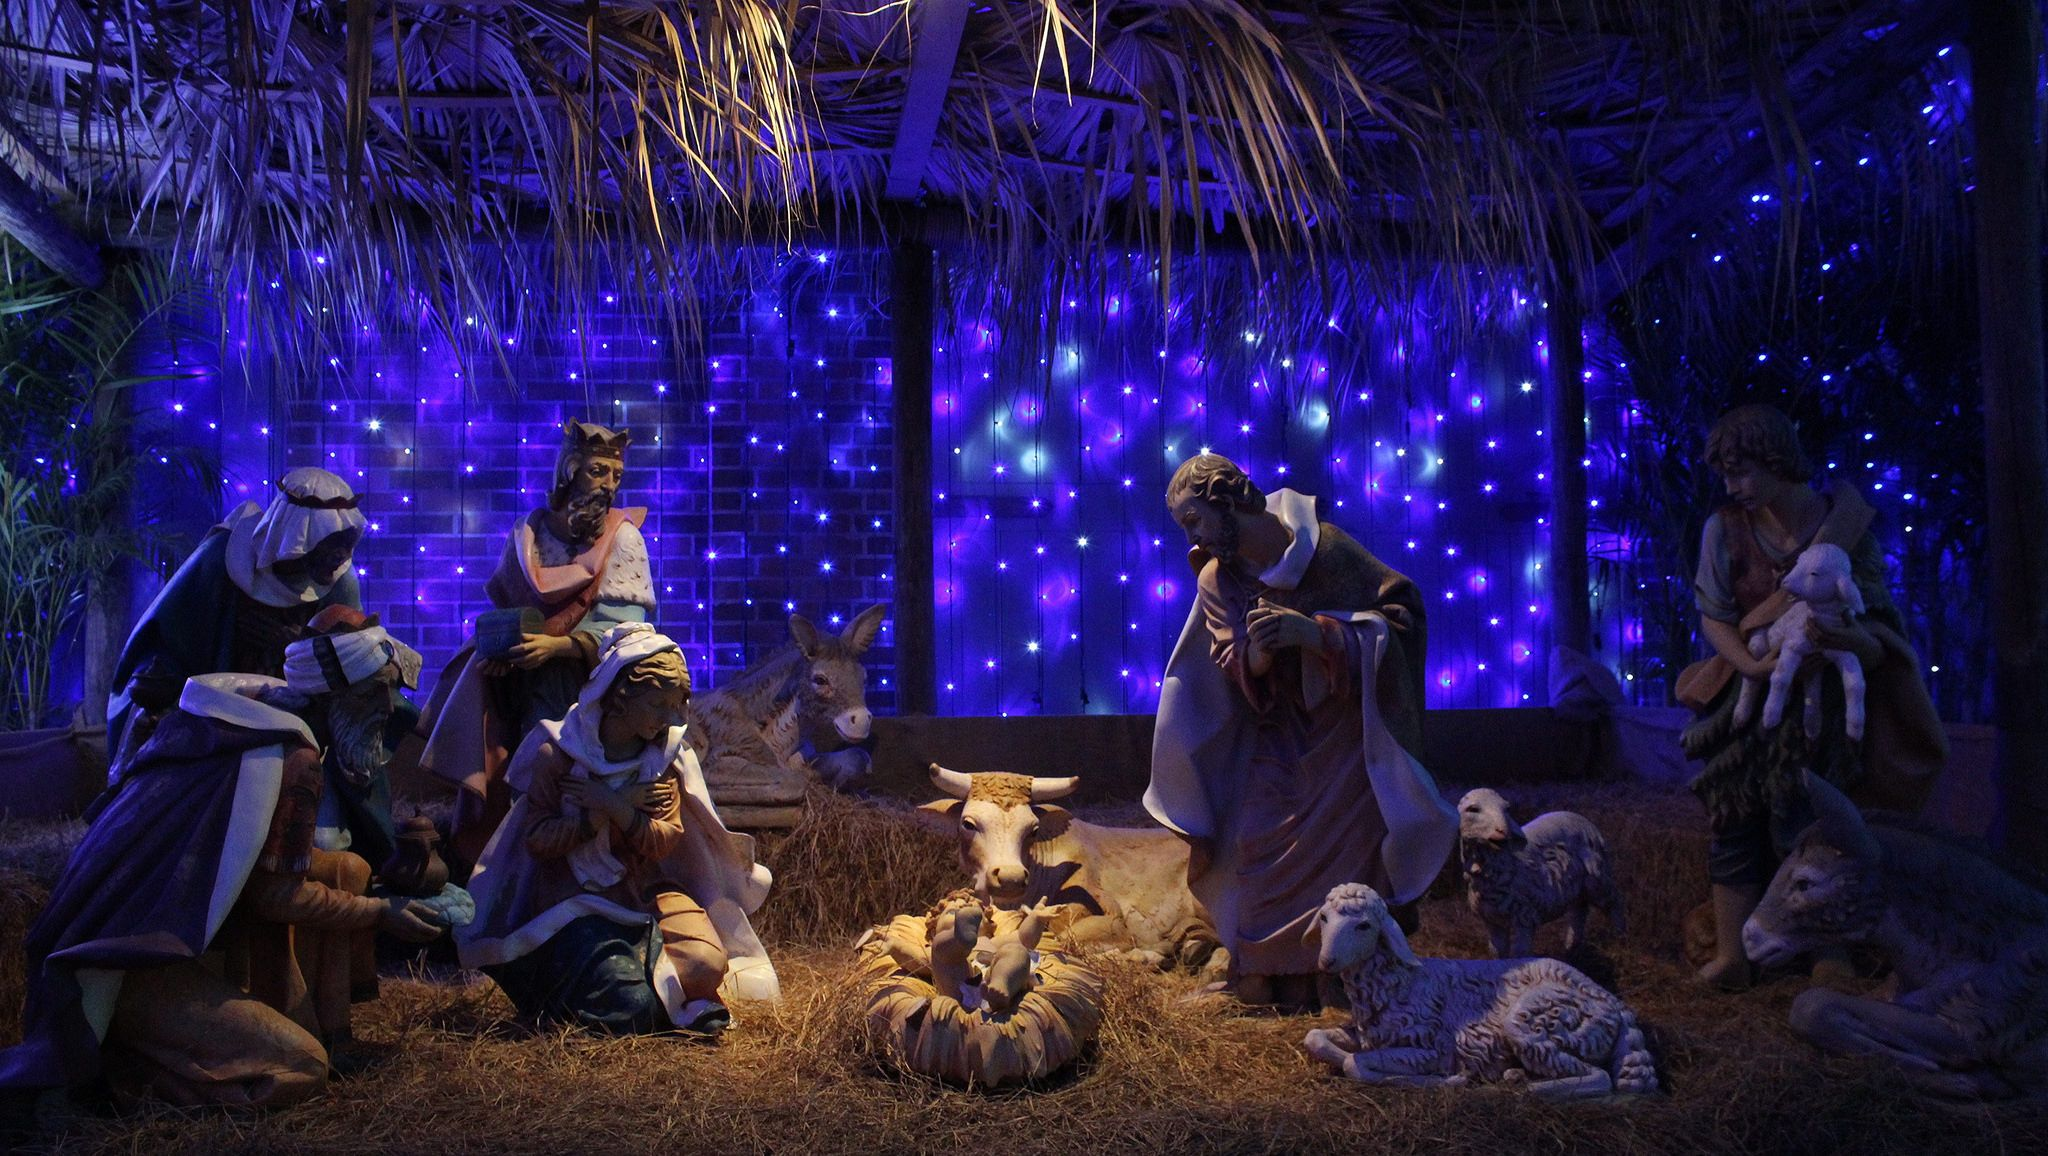 https://flic.kr/p/ATEQ1u | Nativity Scene | One of the christmas displays at The Osborne Family Spectacle of Dancing Lights.at Disney's Hollywood Studios Orlando Florida www.facebook.com/ChadSparkesPhotography/